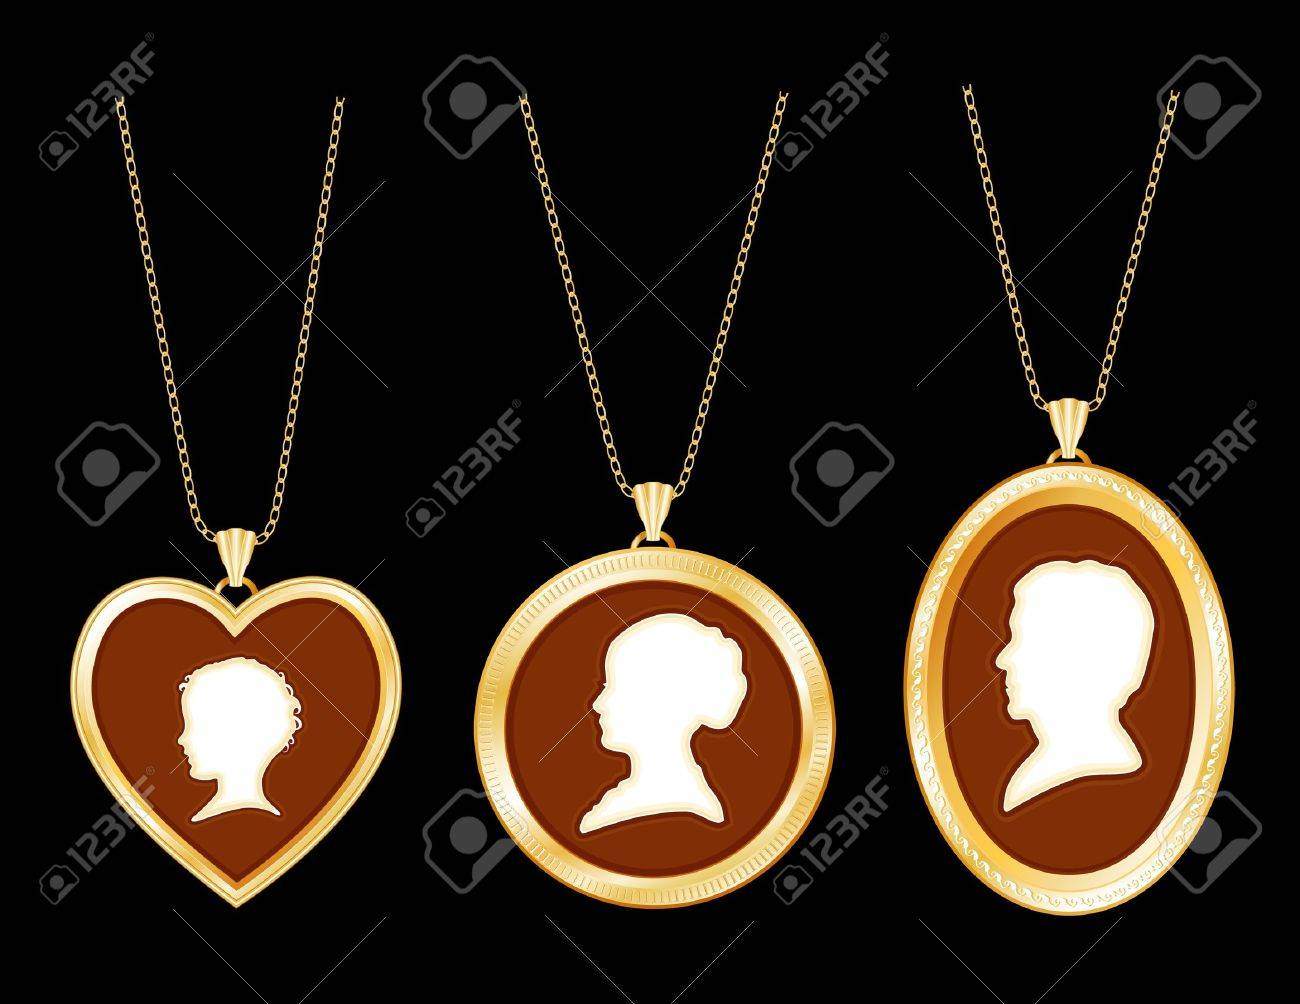 chains three ge young jewelry silhouettes ivory gold family child engraved antique locket photo cameo lady